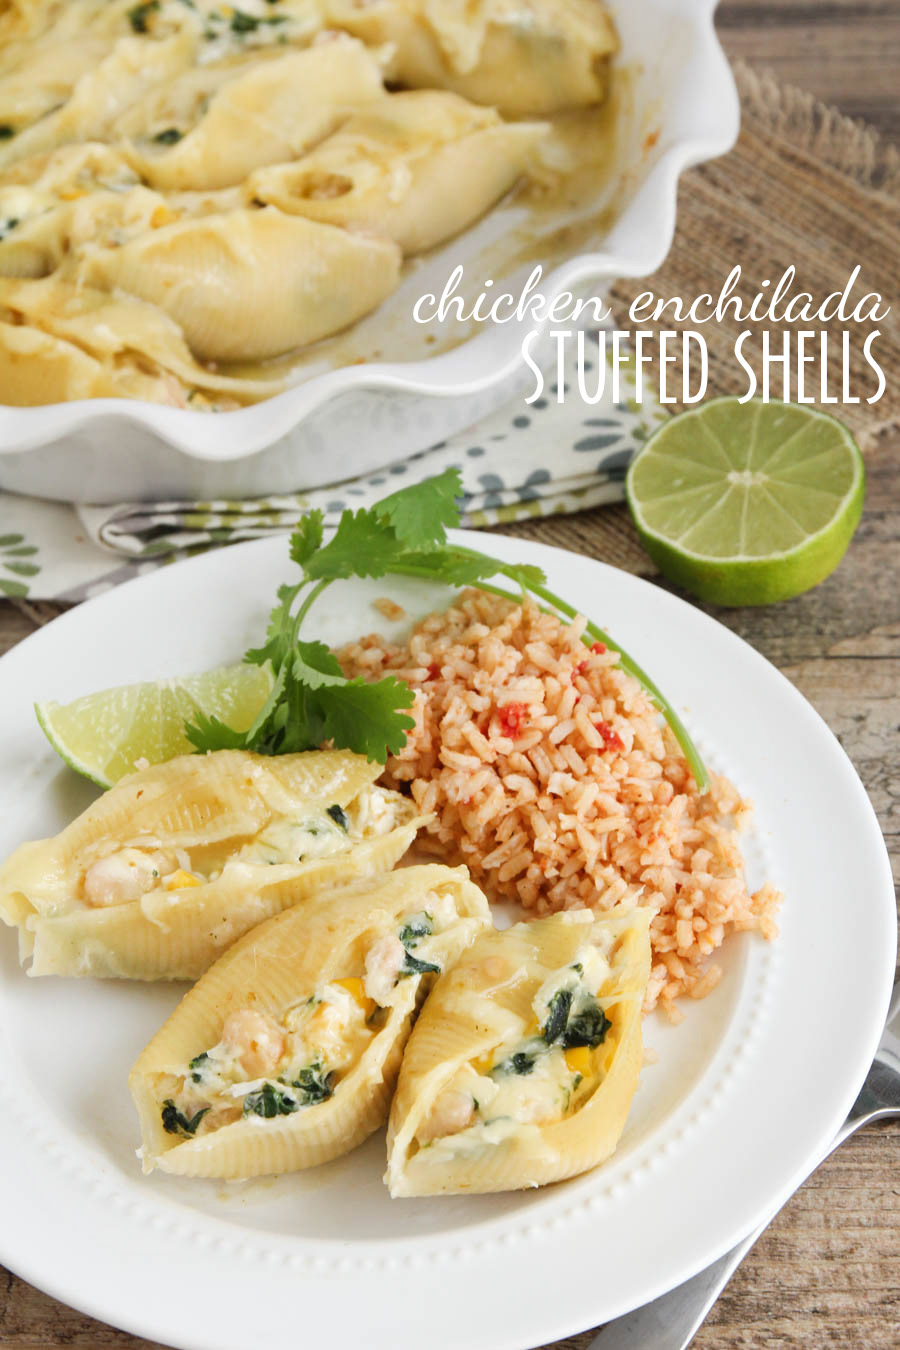 These chicken enchilada stuffed shells are a delicious new twist on an old favorite! So savory and delicious!